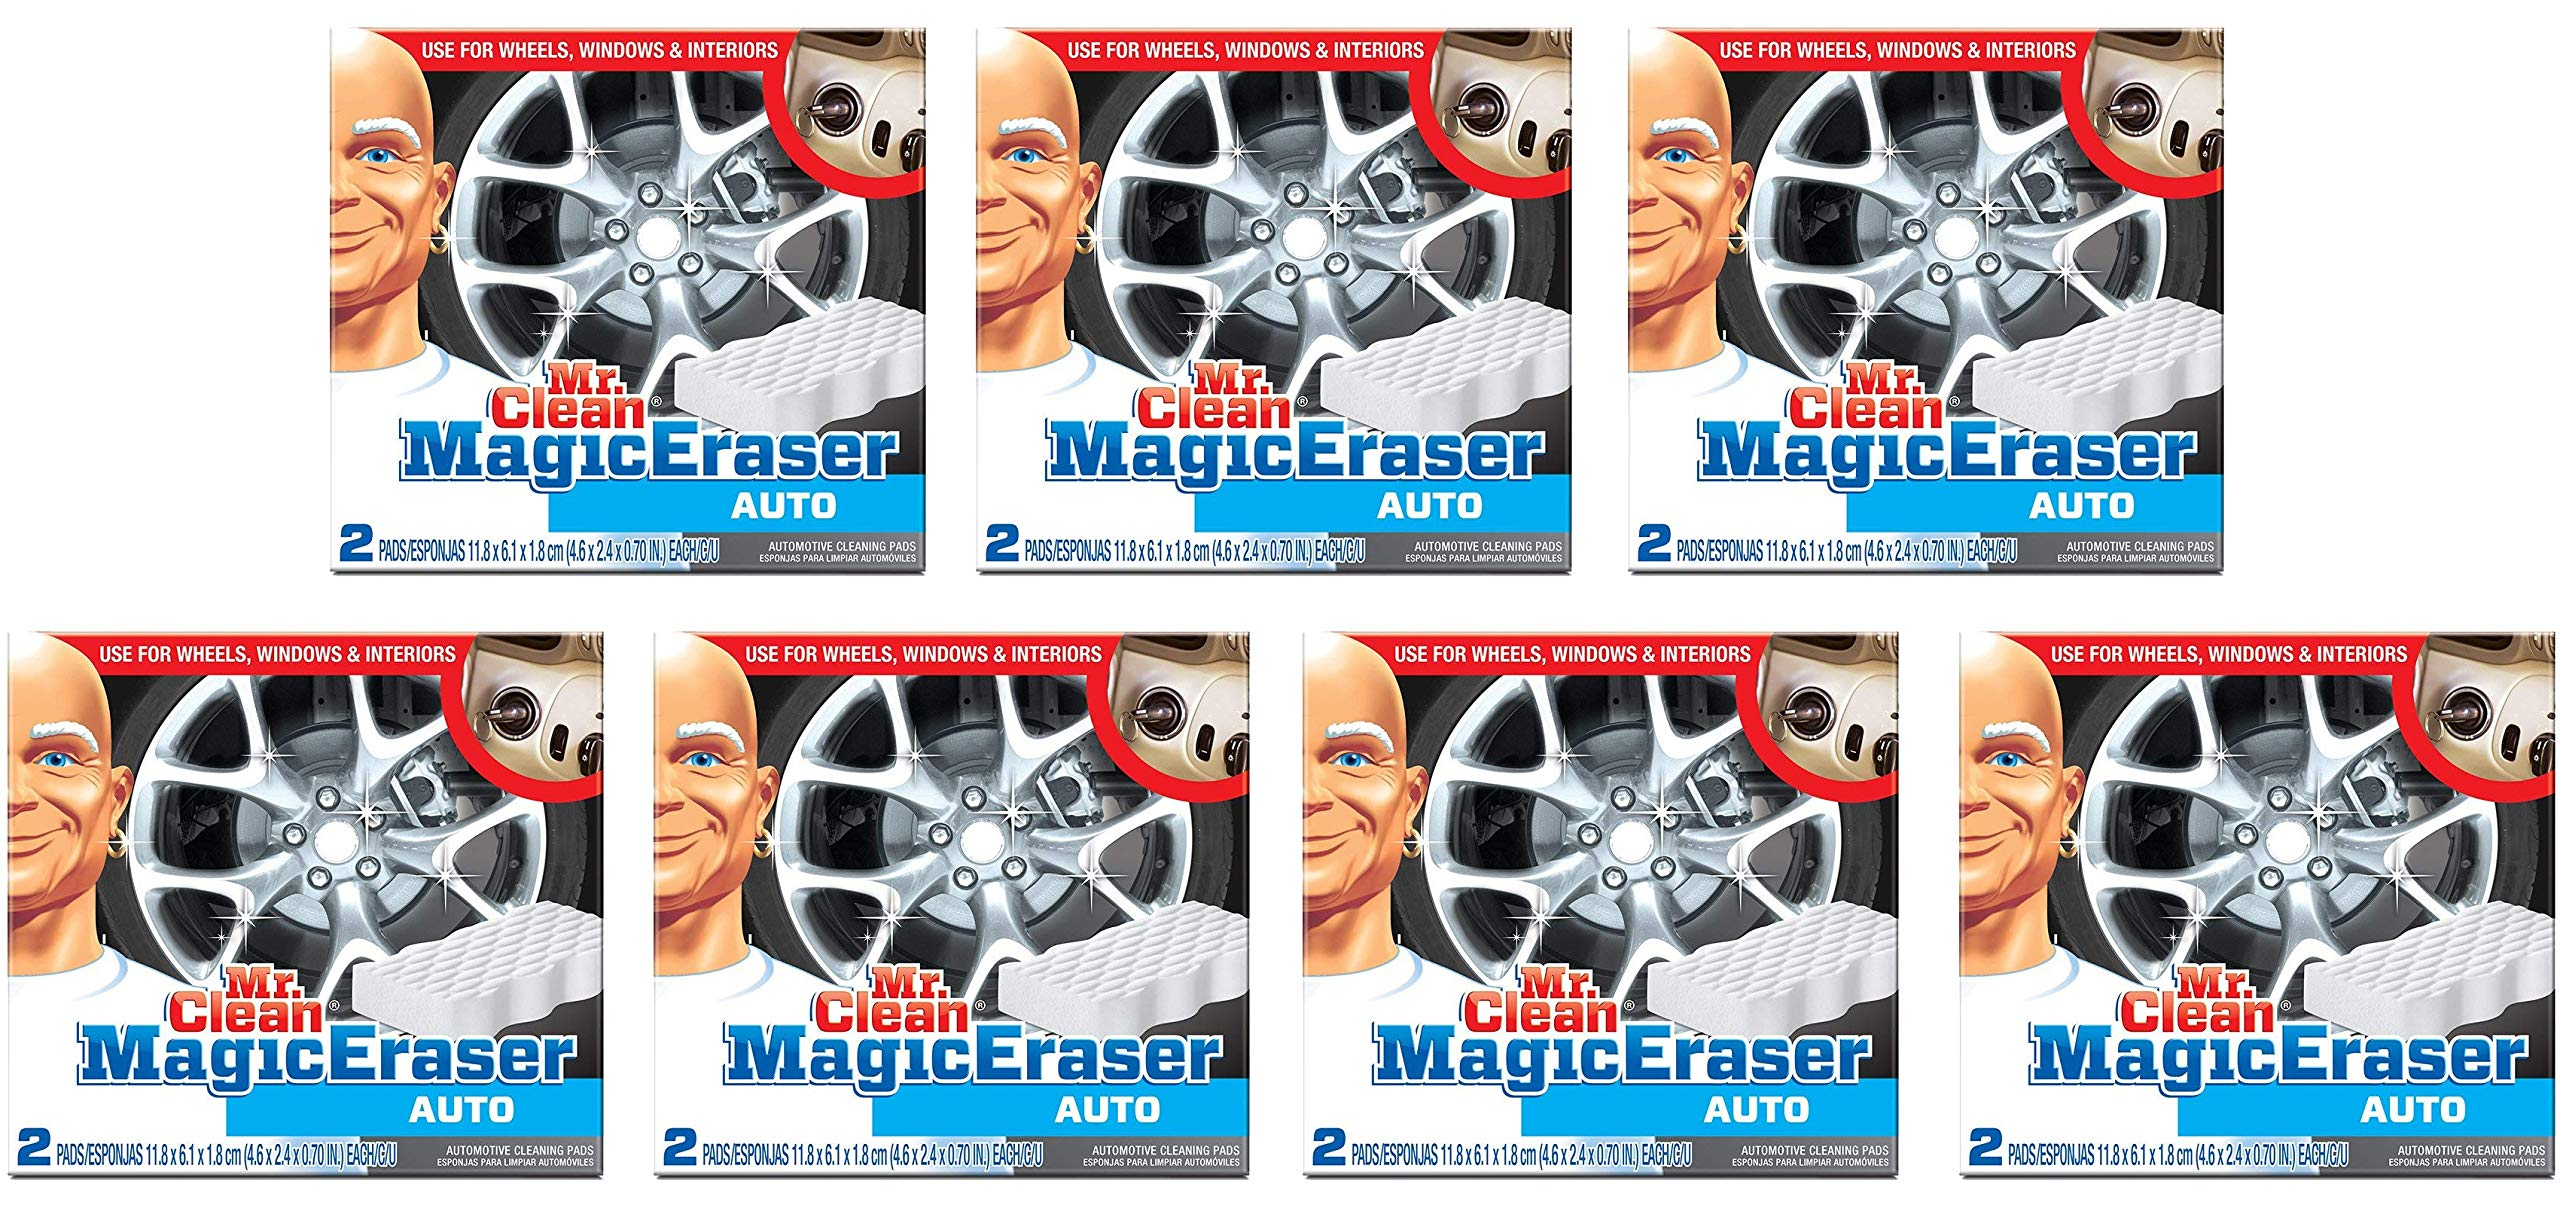 Mr. Clean Professional Magic Eraser Automotive Cleaning Pads, 2 Count, 7 Packs, 14 Cleaning Pads Total